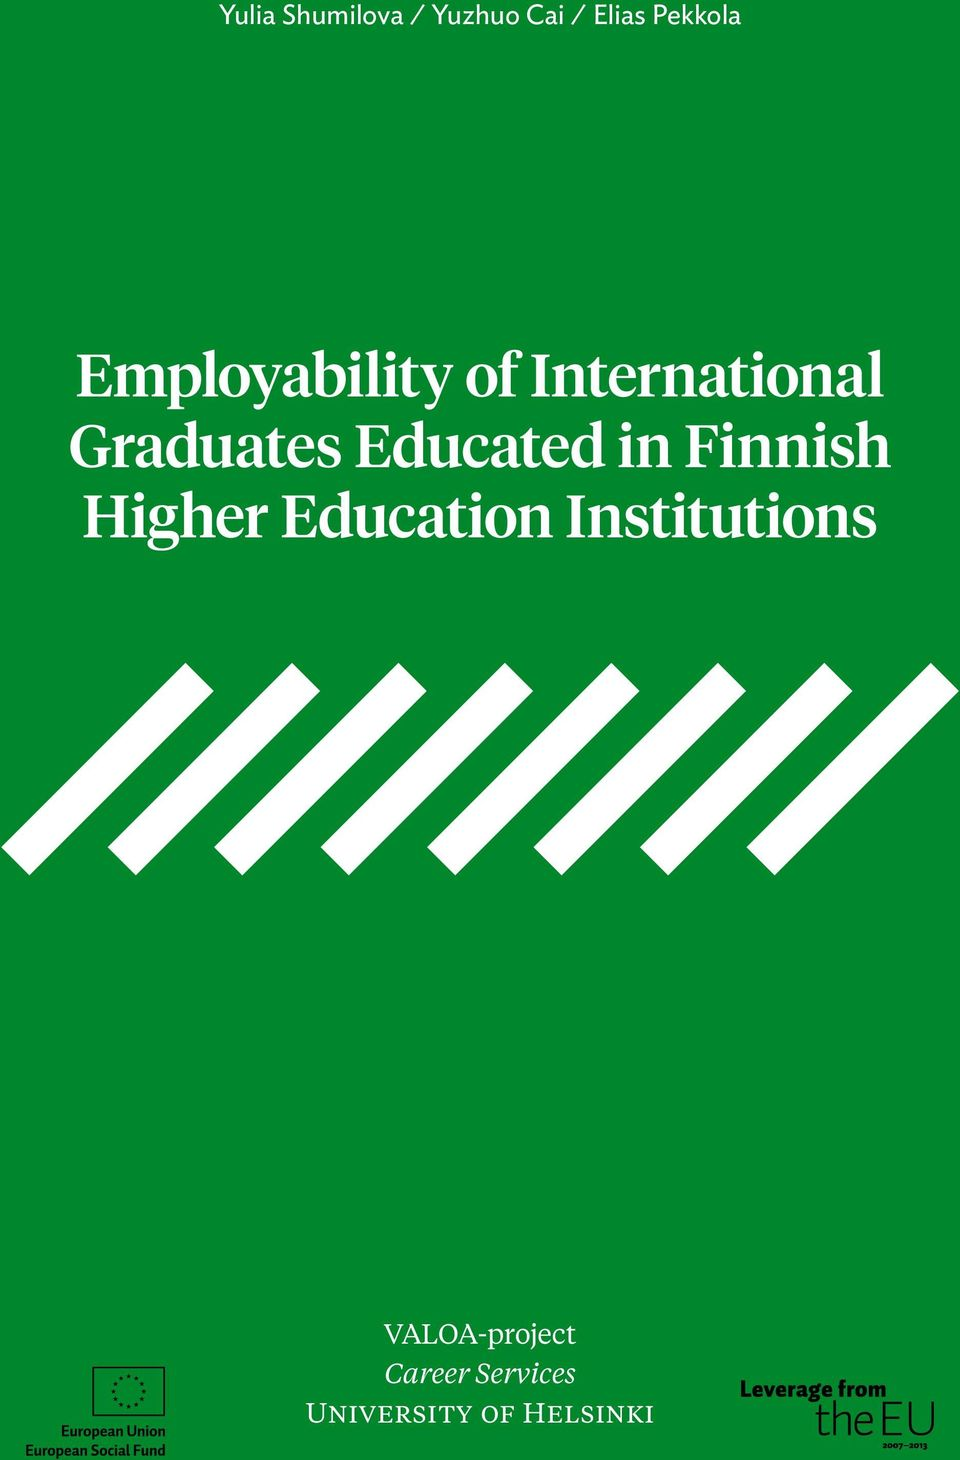 Educated in Finnish Higher Education